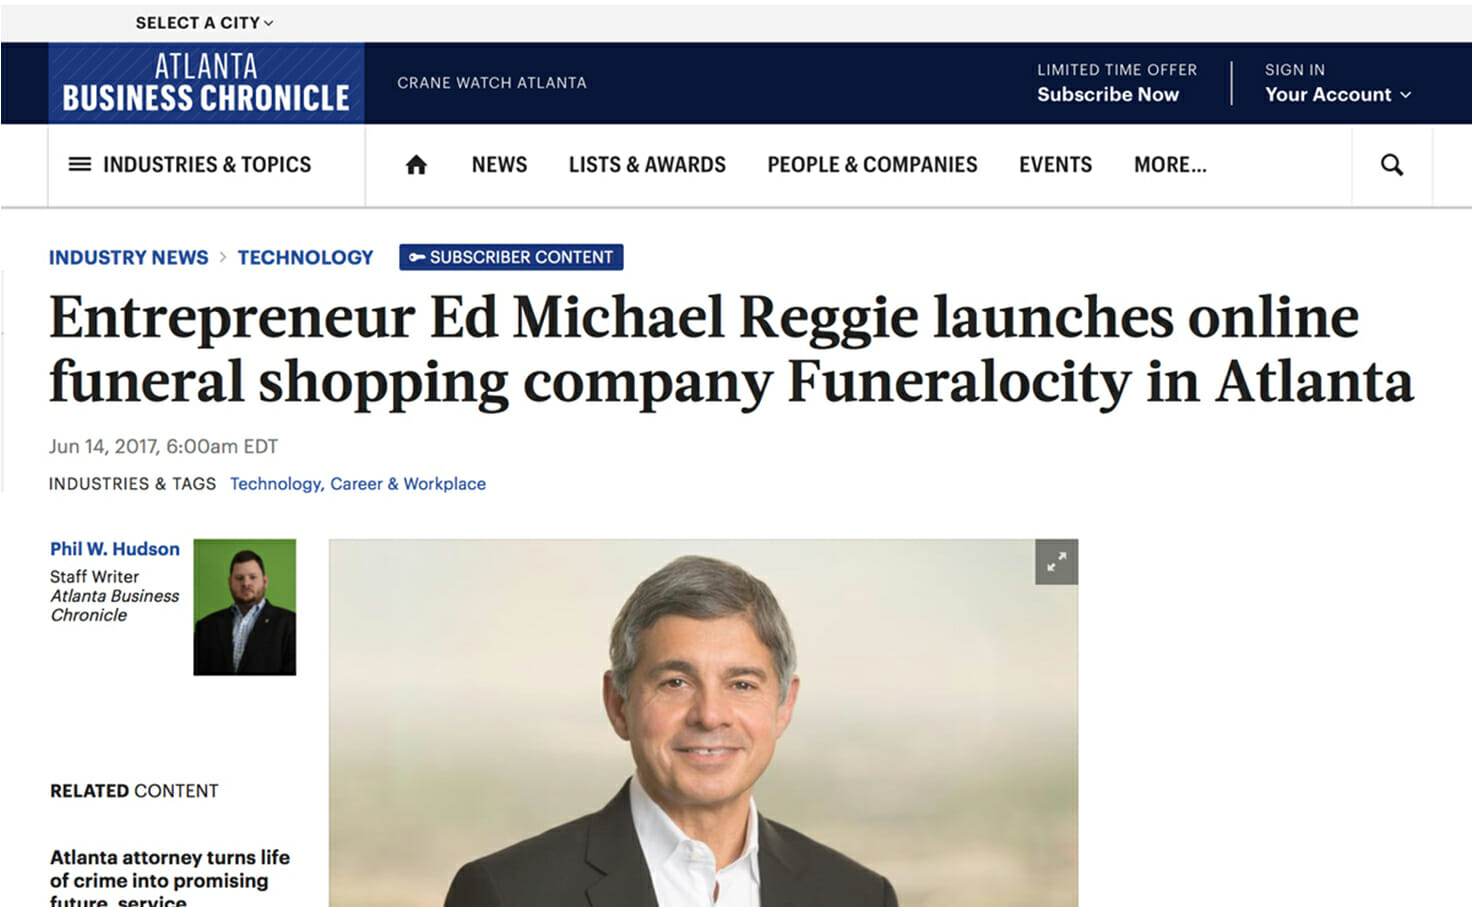 Atlanta Business Chronicle Q&A with Funeralocity Founder and CEO Ed Michael Reggie